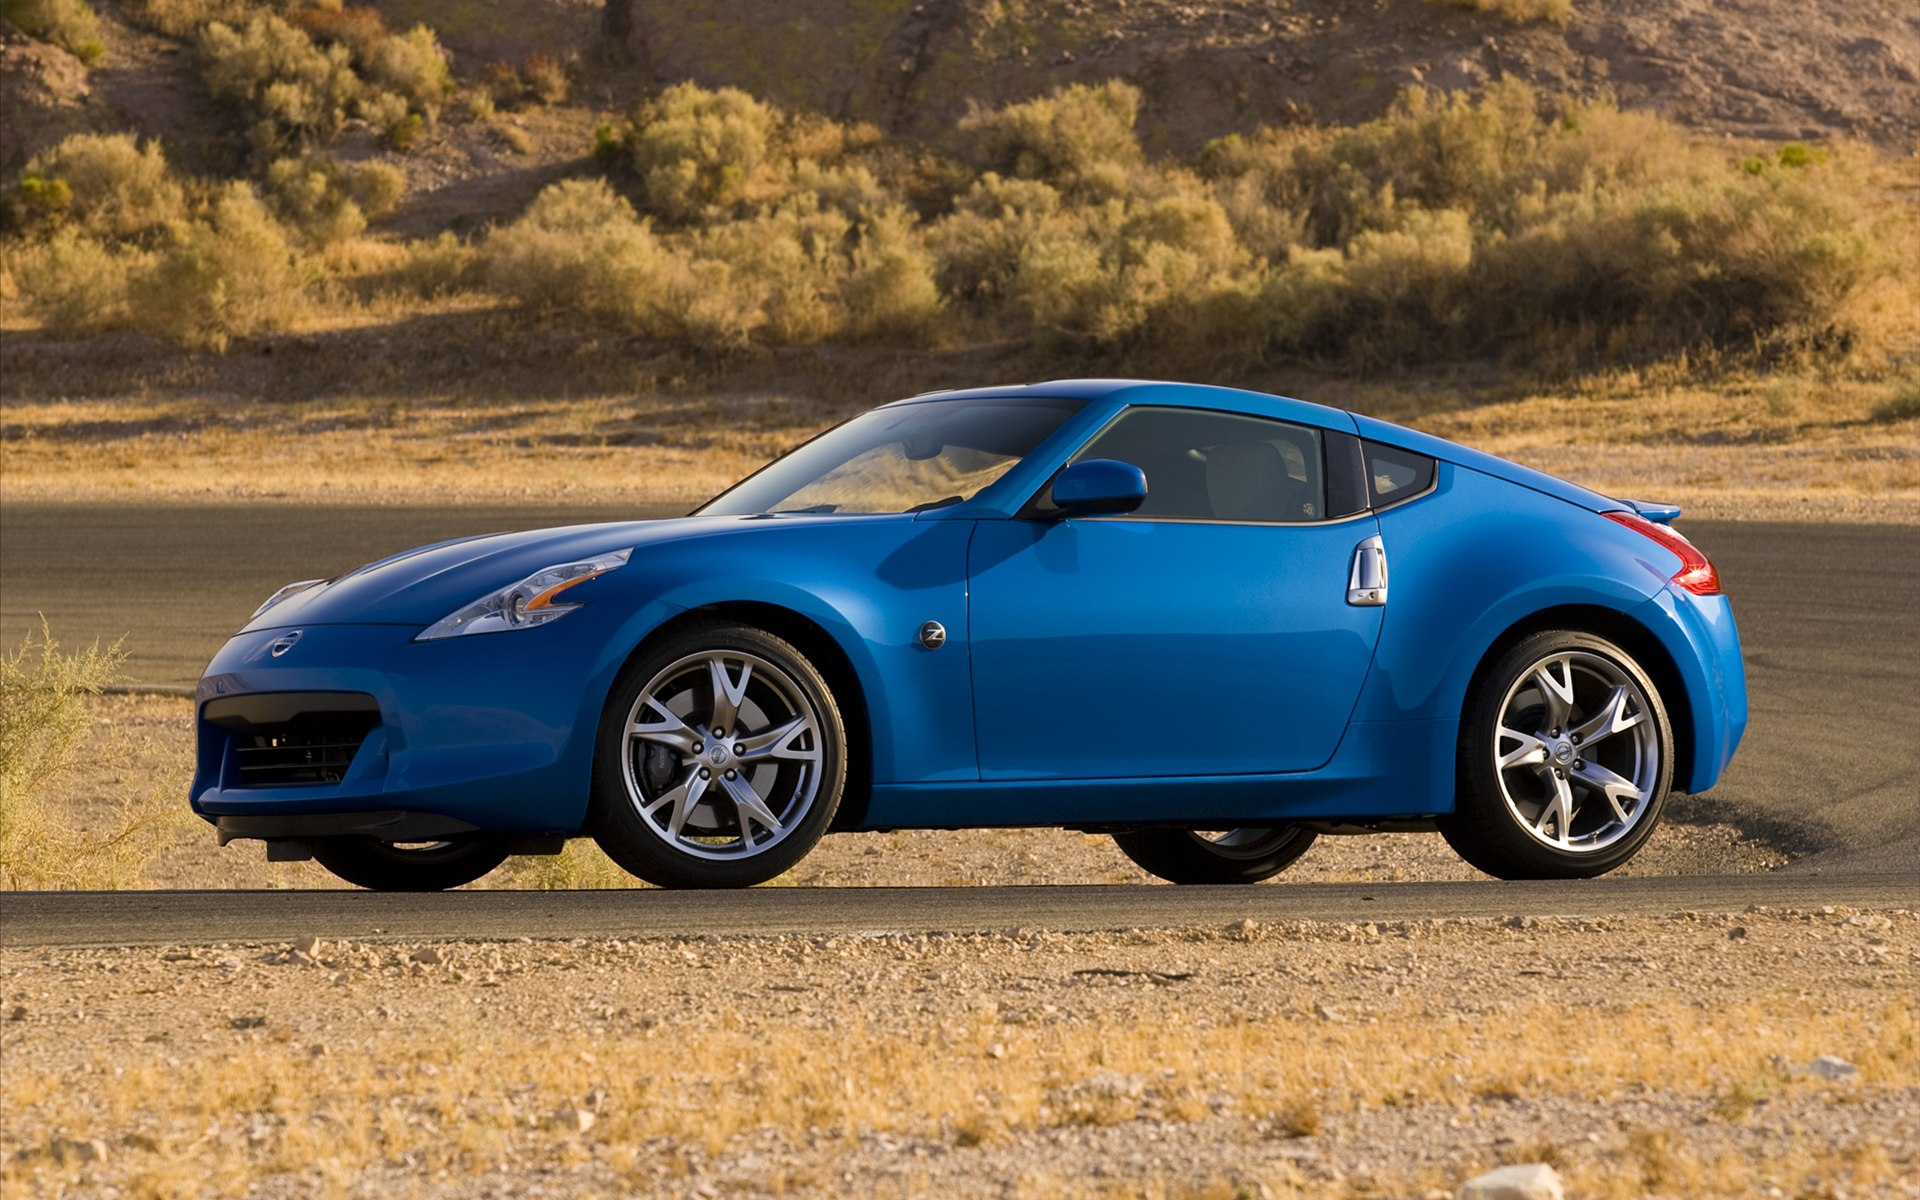 2013 370z wallpaper - photo #45